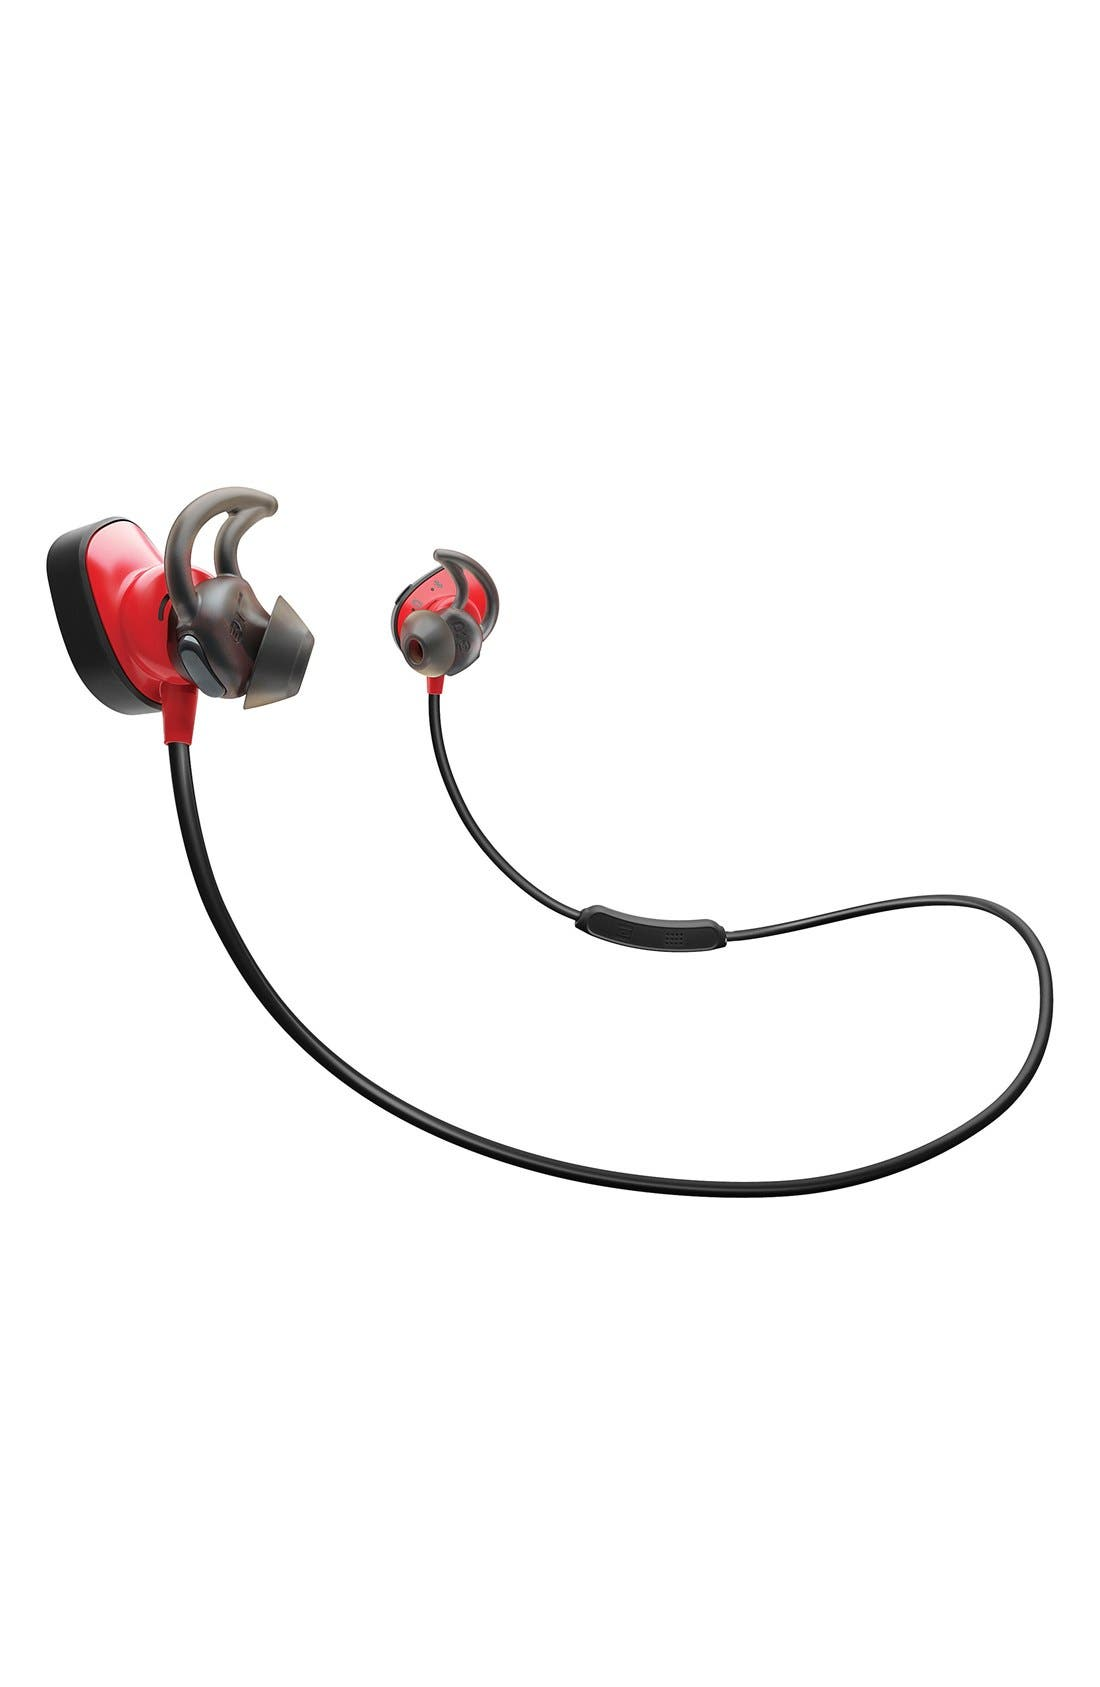 BOSE<SUP>®</SUP> SoundSport<sup>®</sup> Pulse In-Ear Wireless Headphones